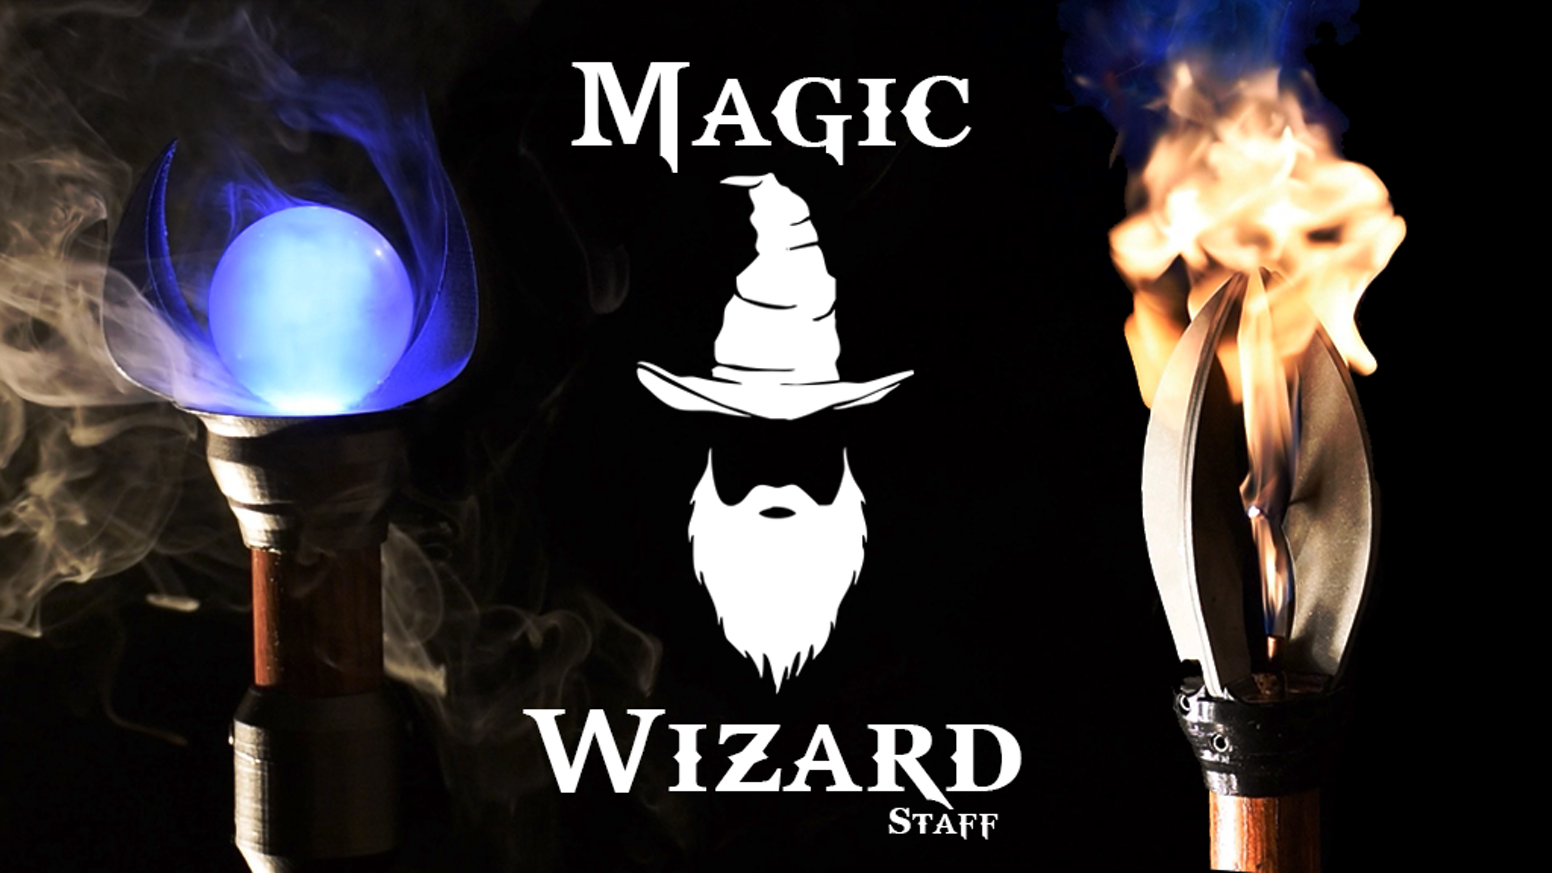 A Wizard Staff That Actually Does Things Our Staffs Conjure Light Fog